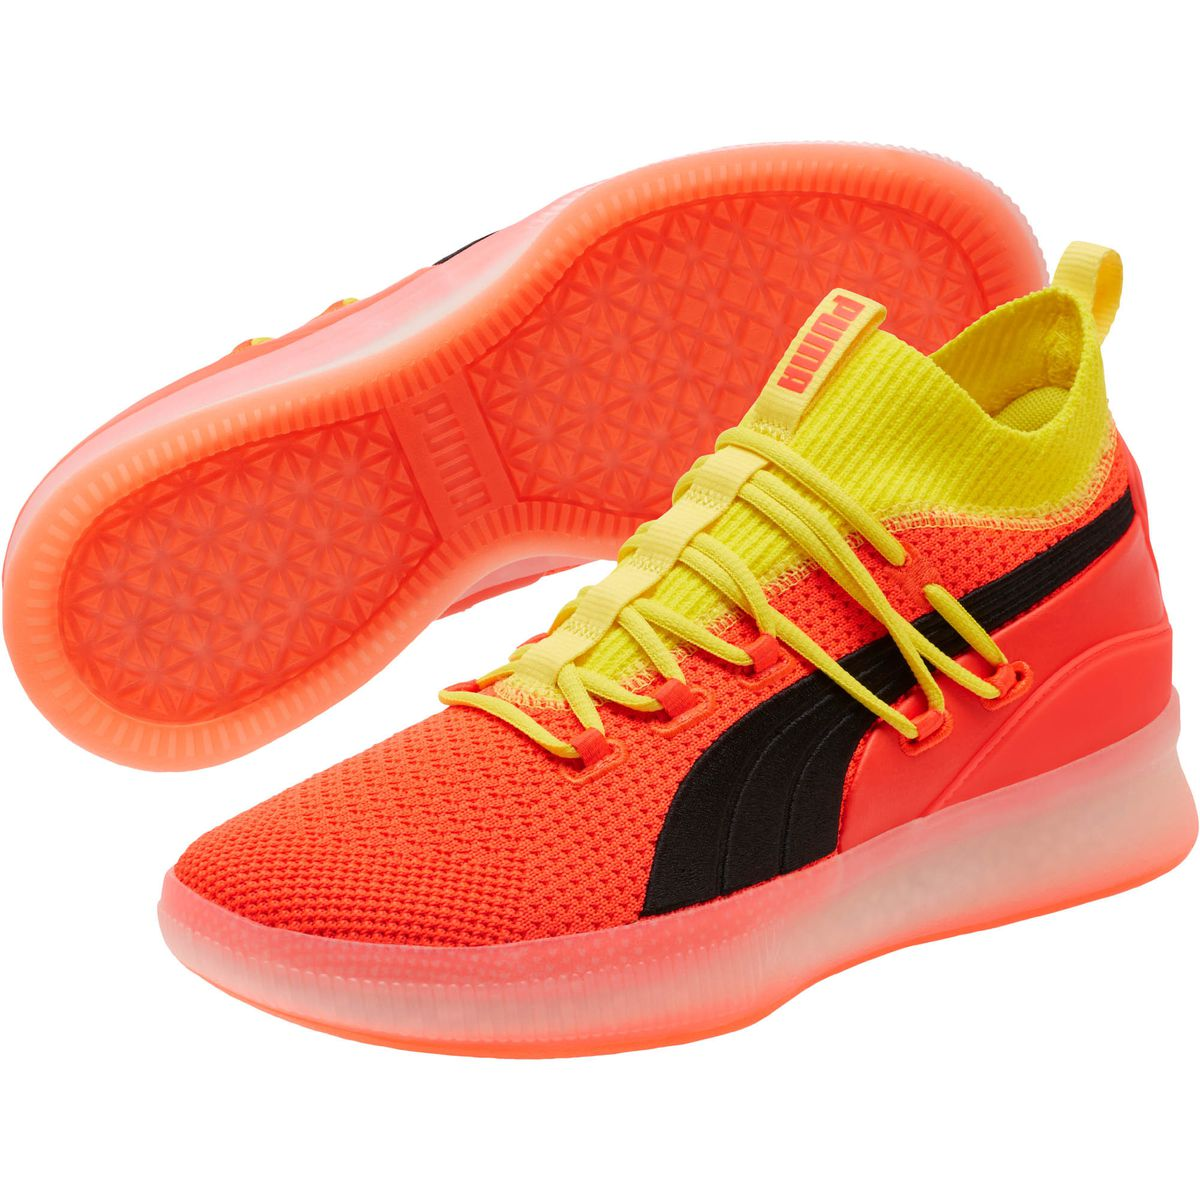 innovative design 3c447 bdd32 Puma's Clyde Court Disrupt basketball shoe drops just in ...